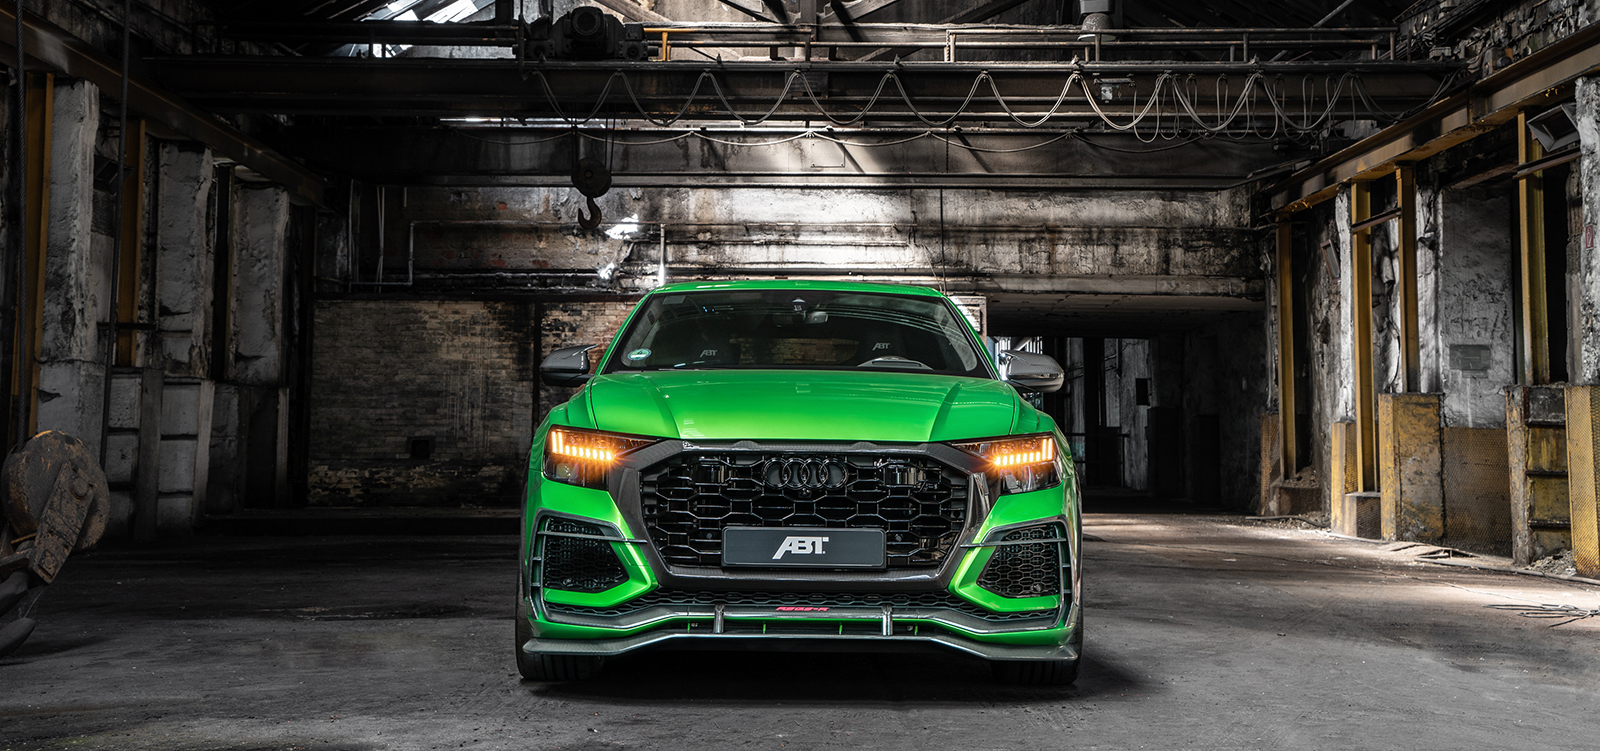 ABT_RSQ8-R_green_HR23_building_front